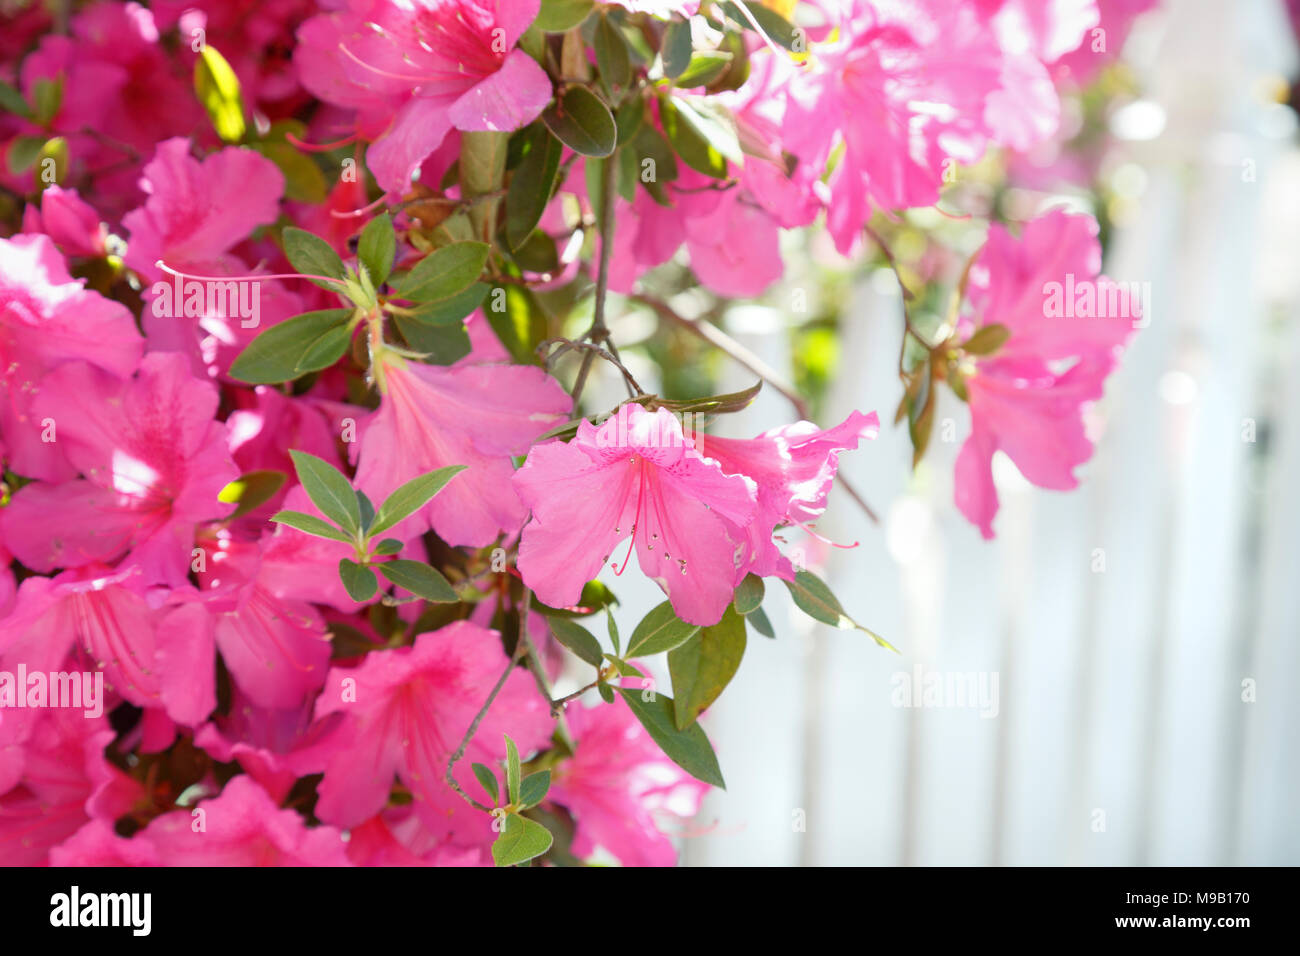 Rhododendron - Azalea with white picket fence Stock Photo